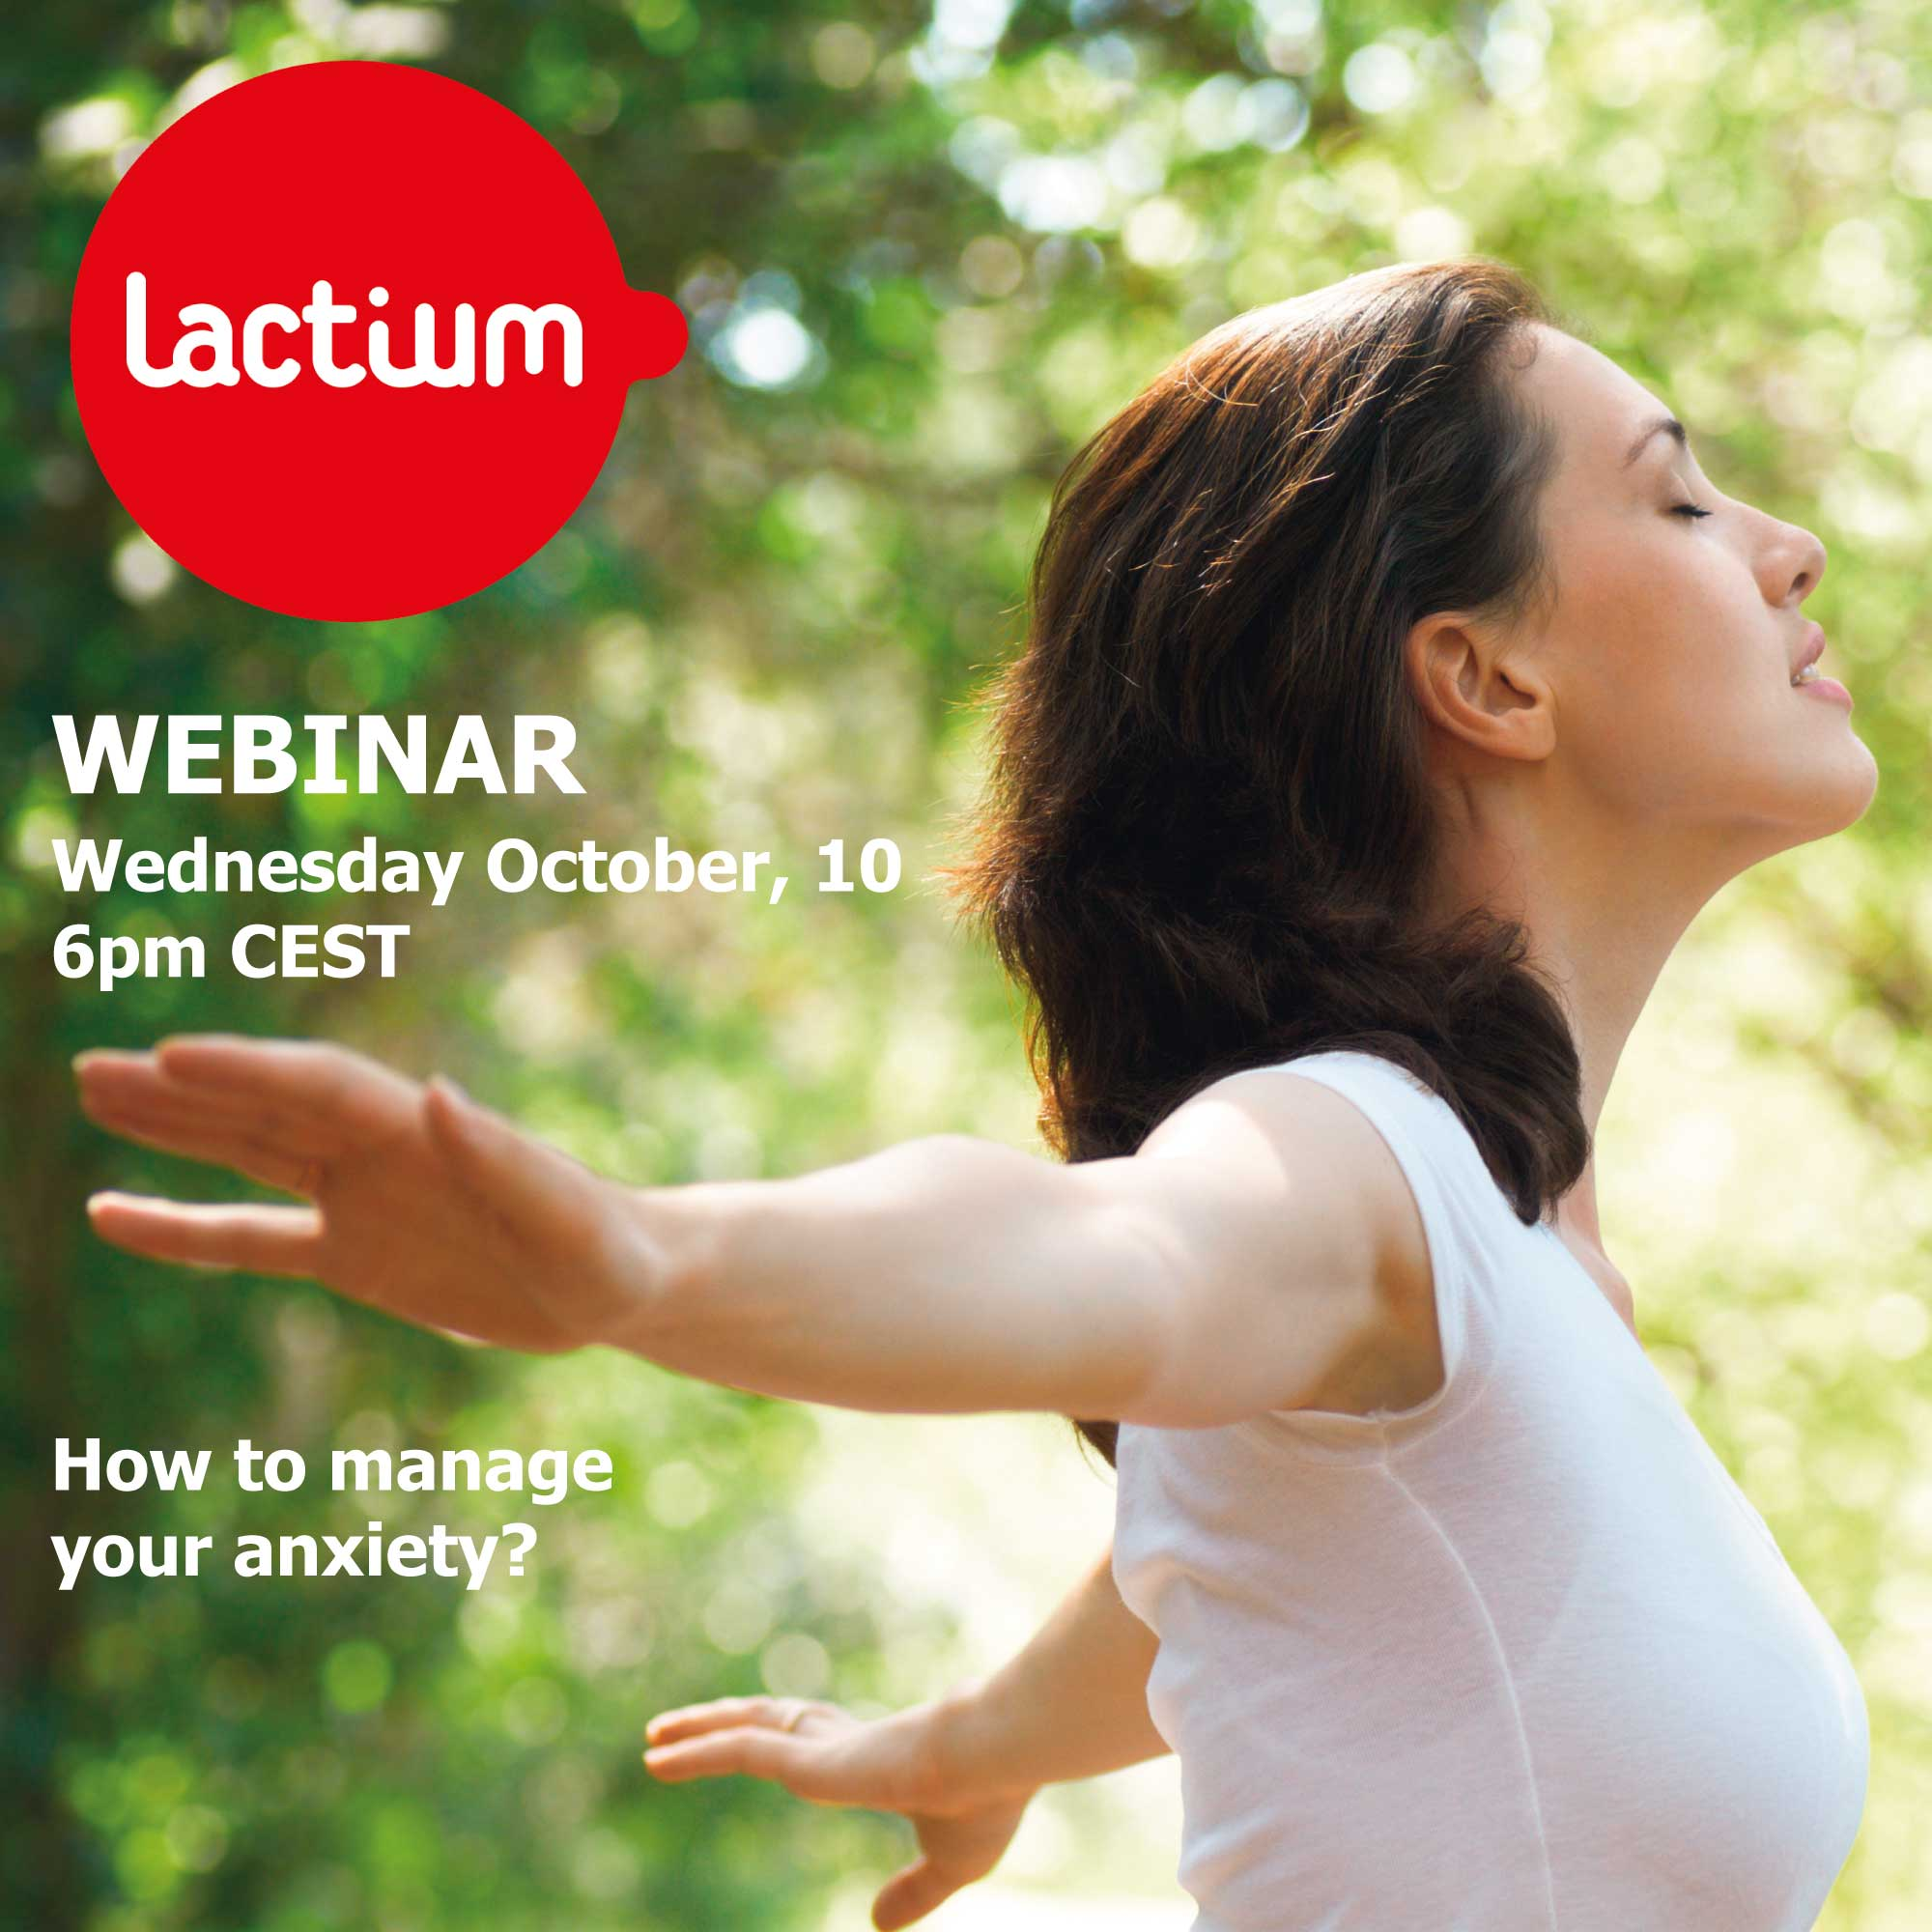 WEBINAR Lactium: how to manage anxiety?